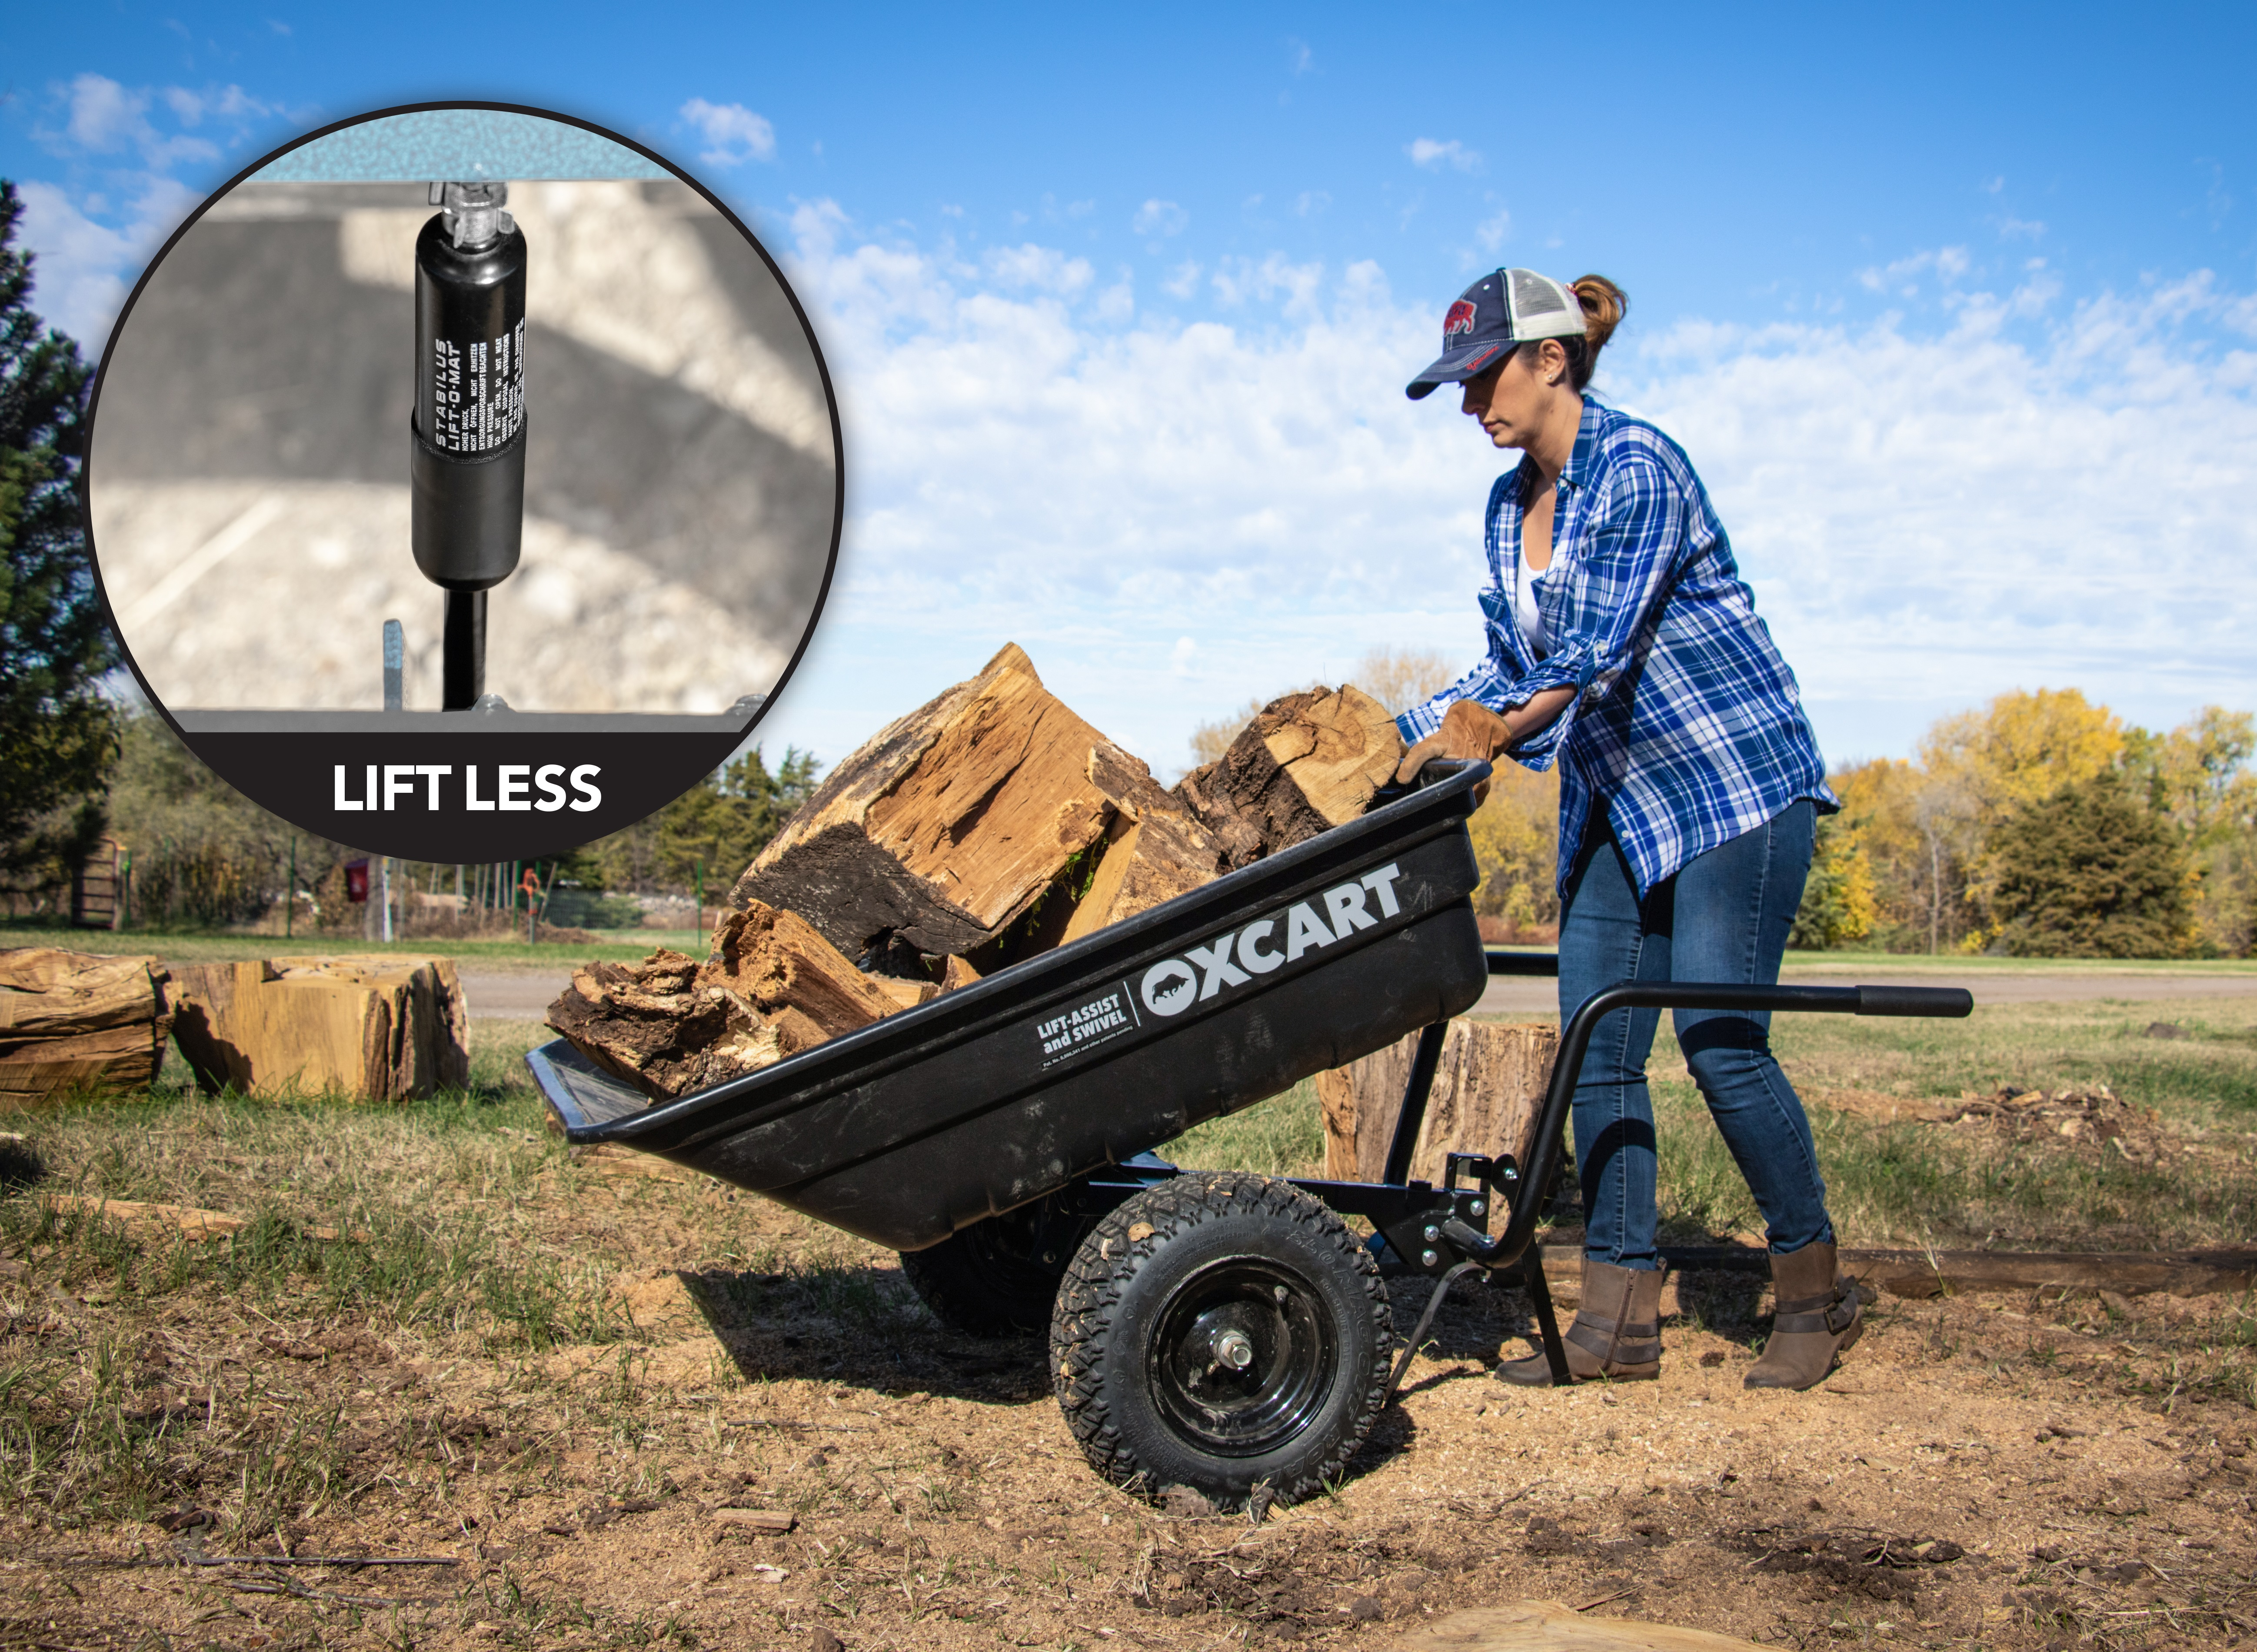 The OxCart utility cart offers time-saving capabilities making life better for hunters, farmers, ranchers and, well, basically anyone who maintains a property.